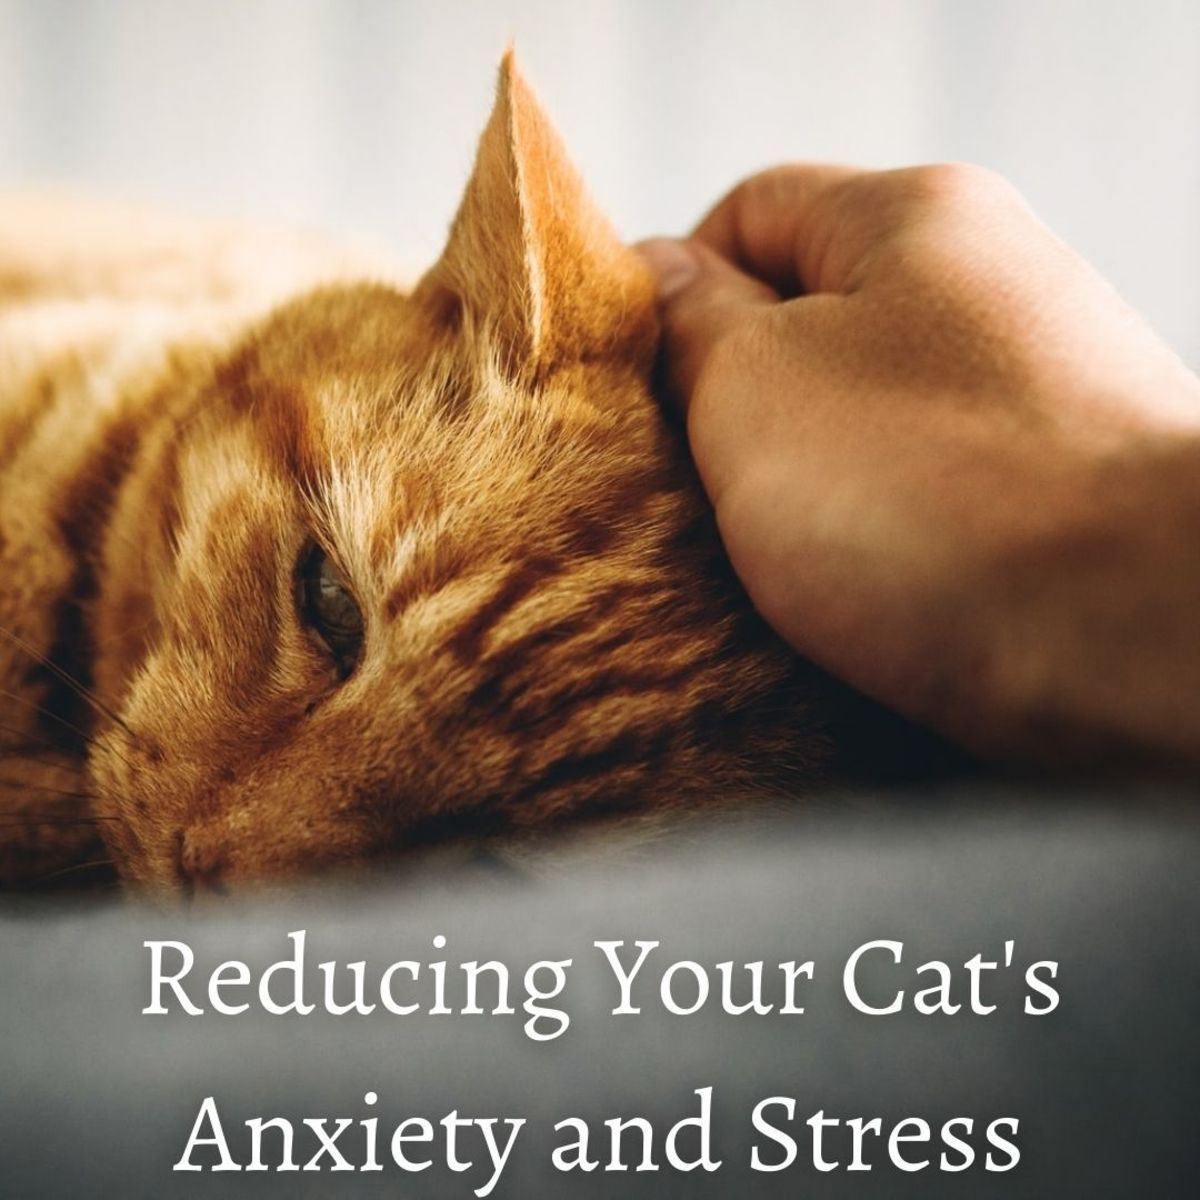 Cats are no different to human beings. They are equally as capable of suffering from anxiety and stress.